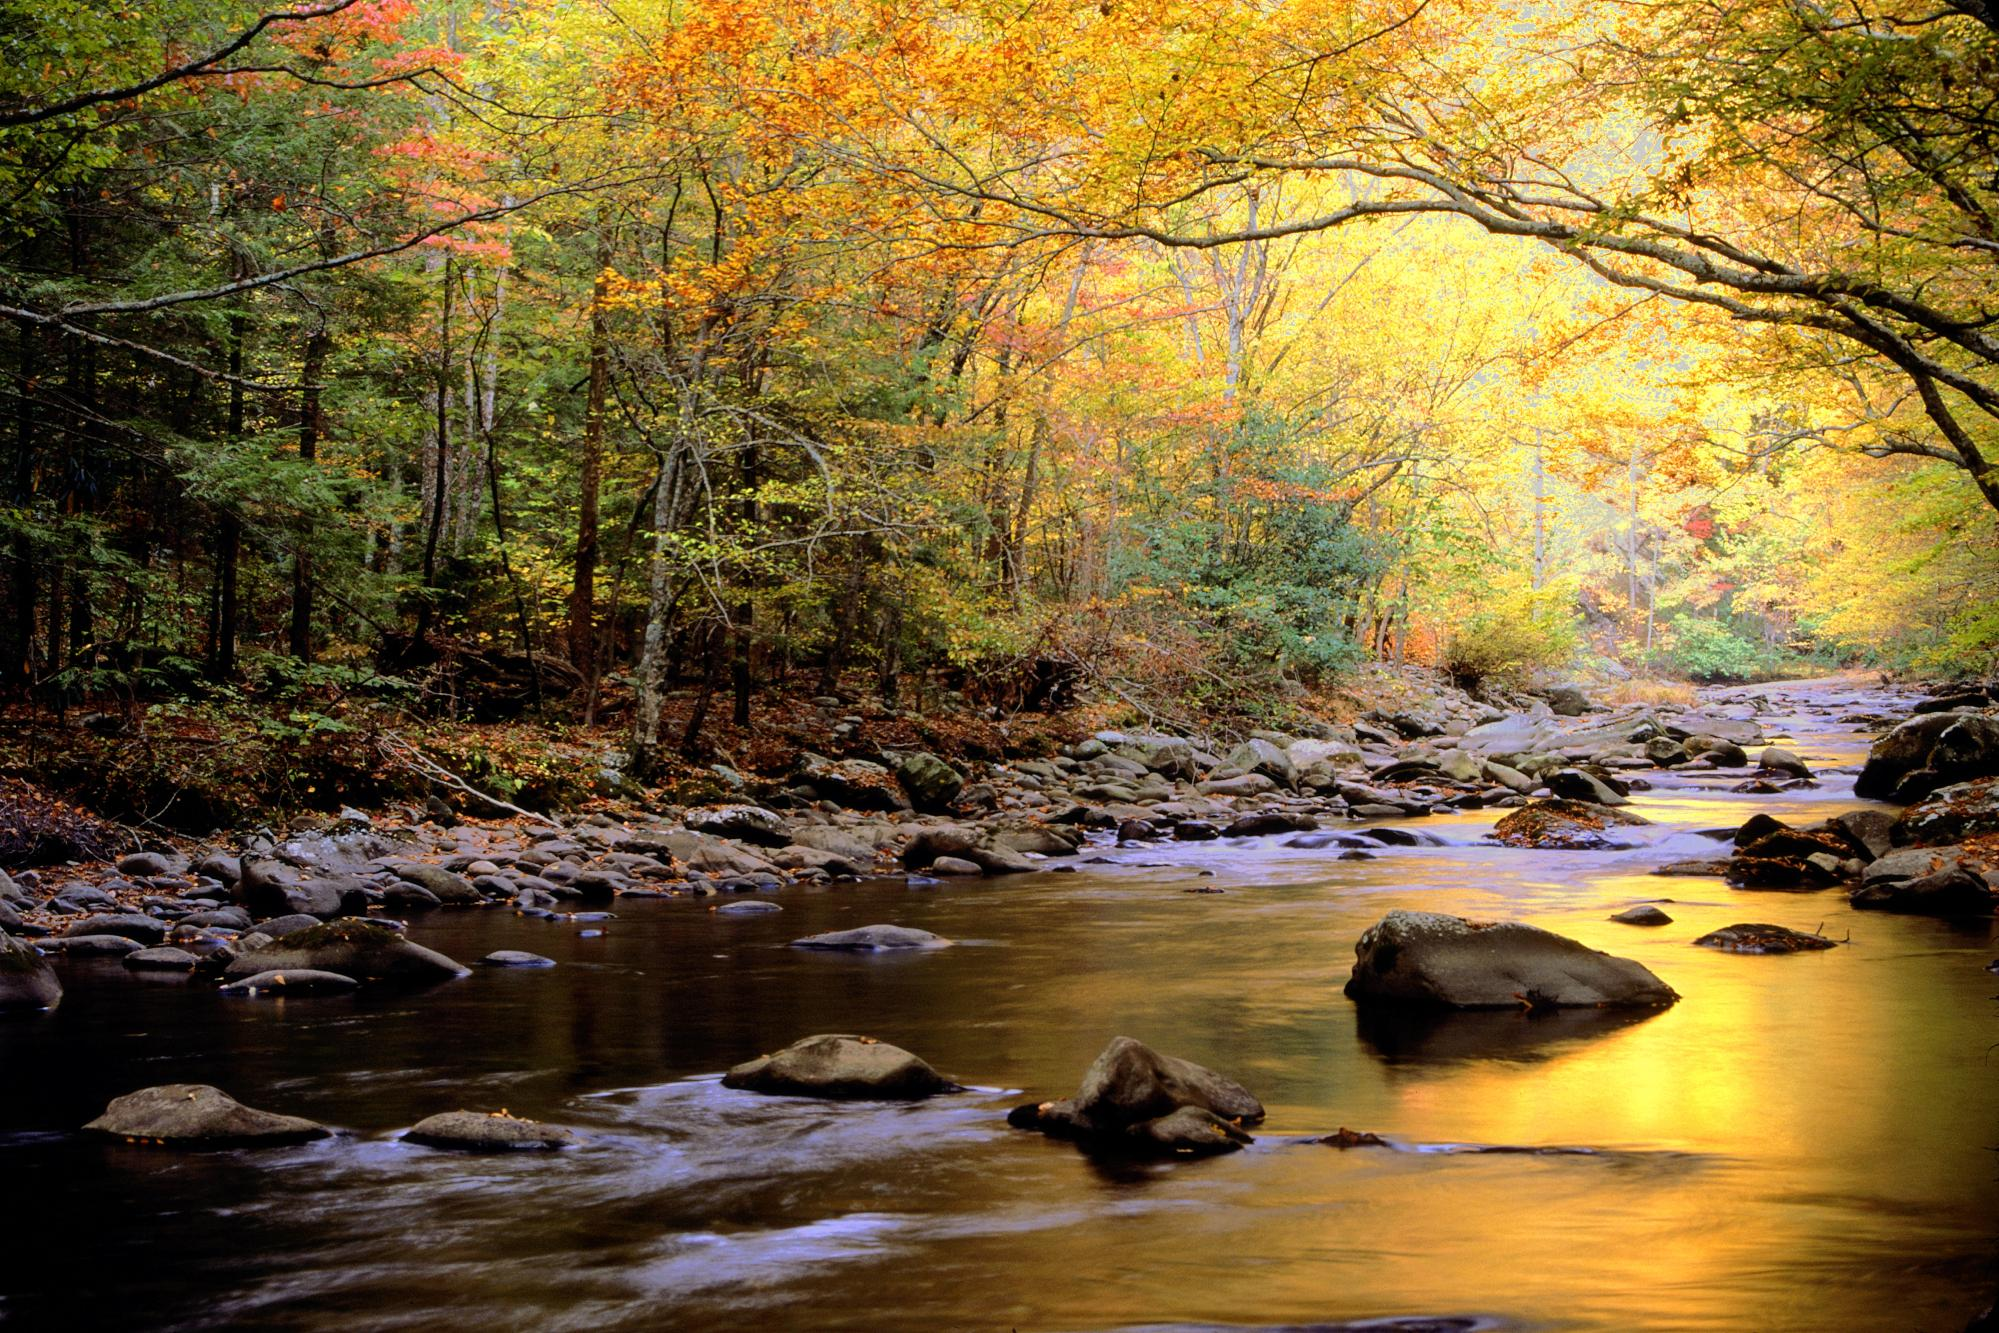 Great-Smoky-Mountains-National-Park-River-Image